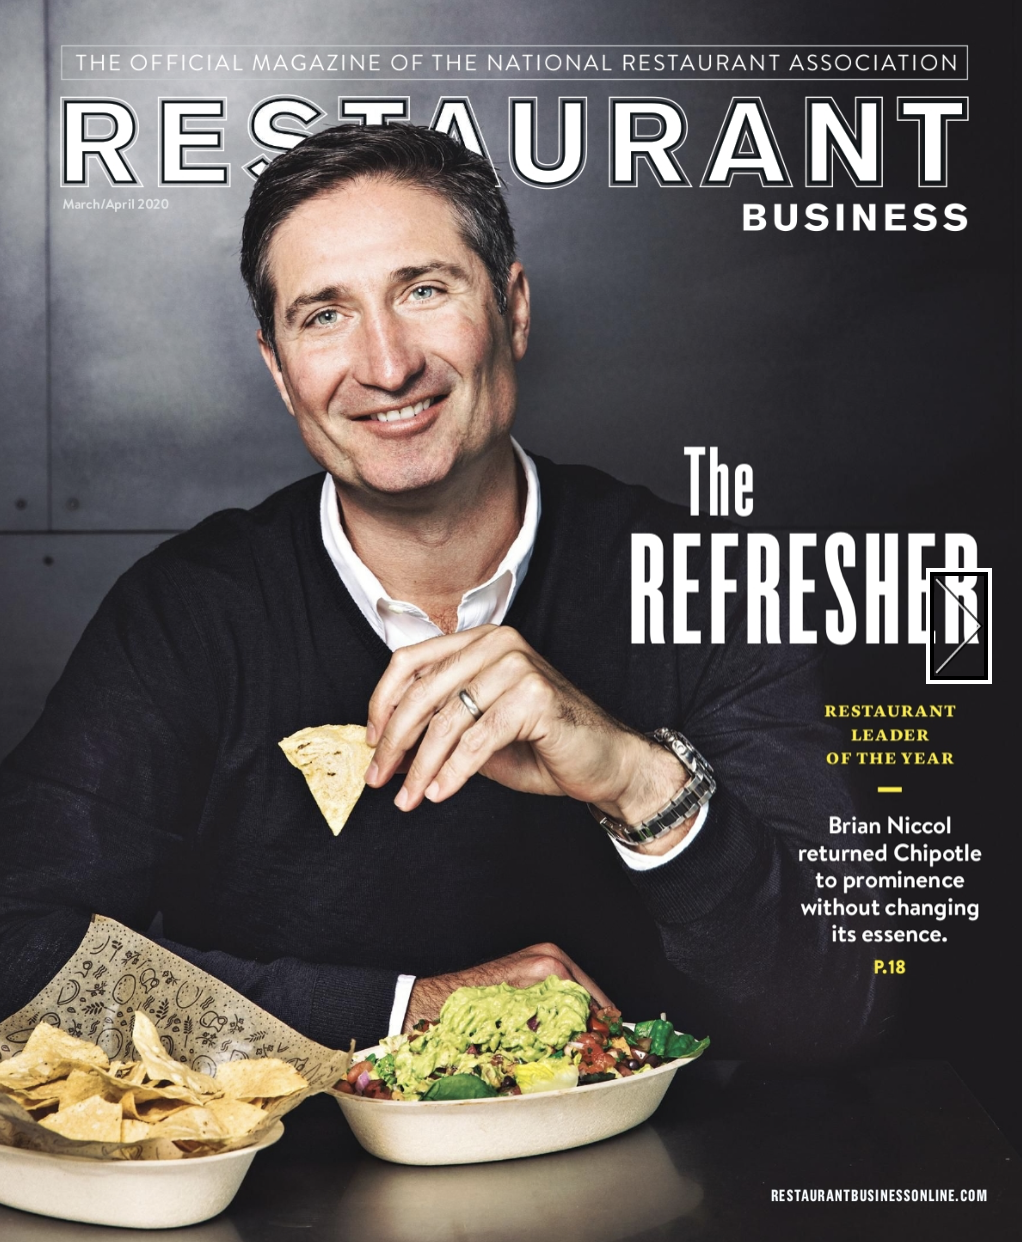 Restaurant Business Magazine March/April 2020 Issue